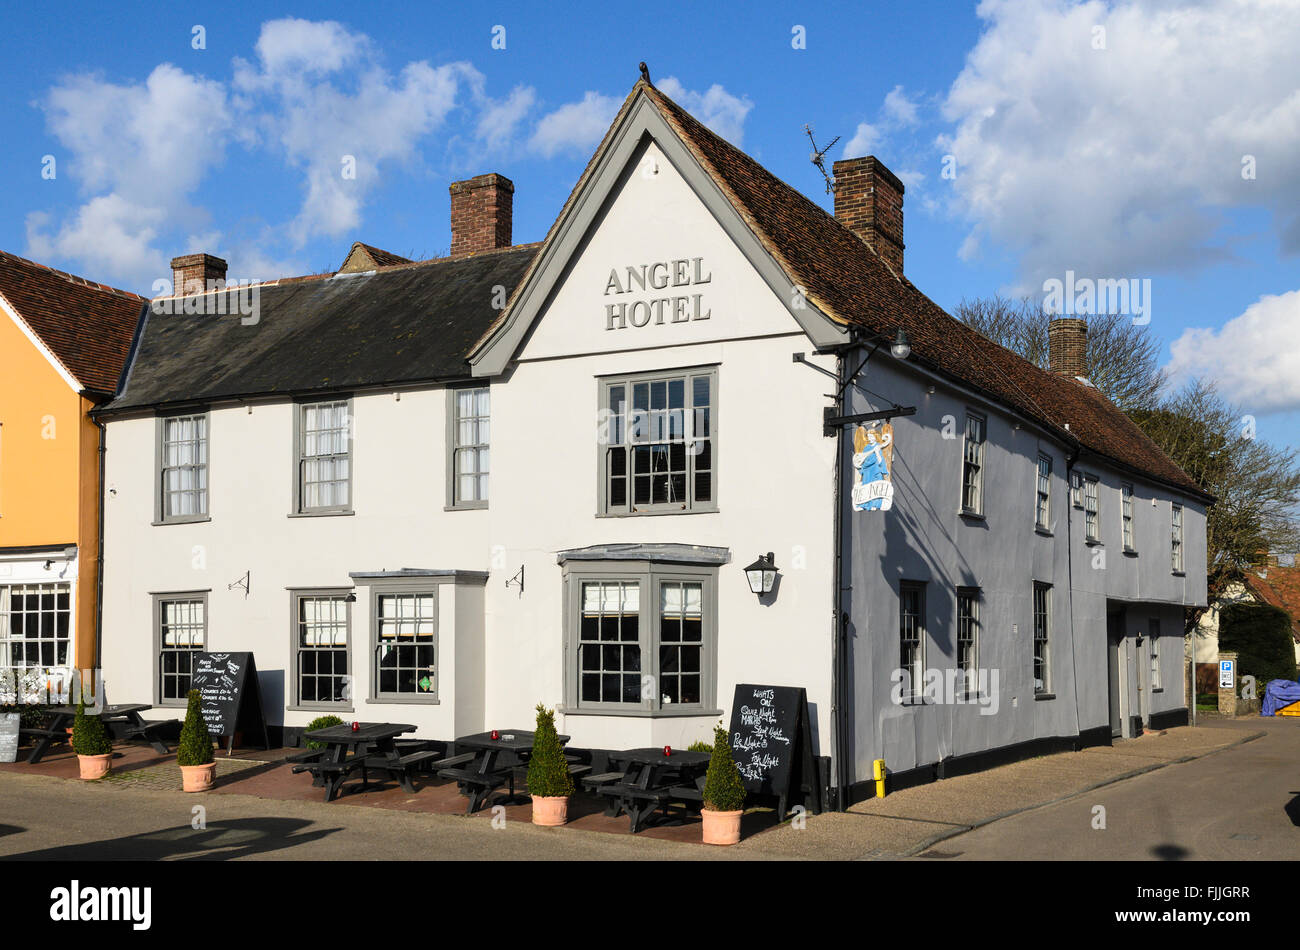 The Angel Hotel Hotel, Lavenham, Suffolk, England, UK. - Stock Image